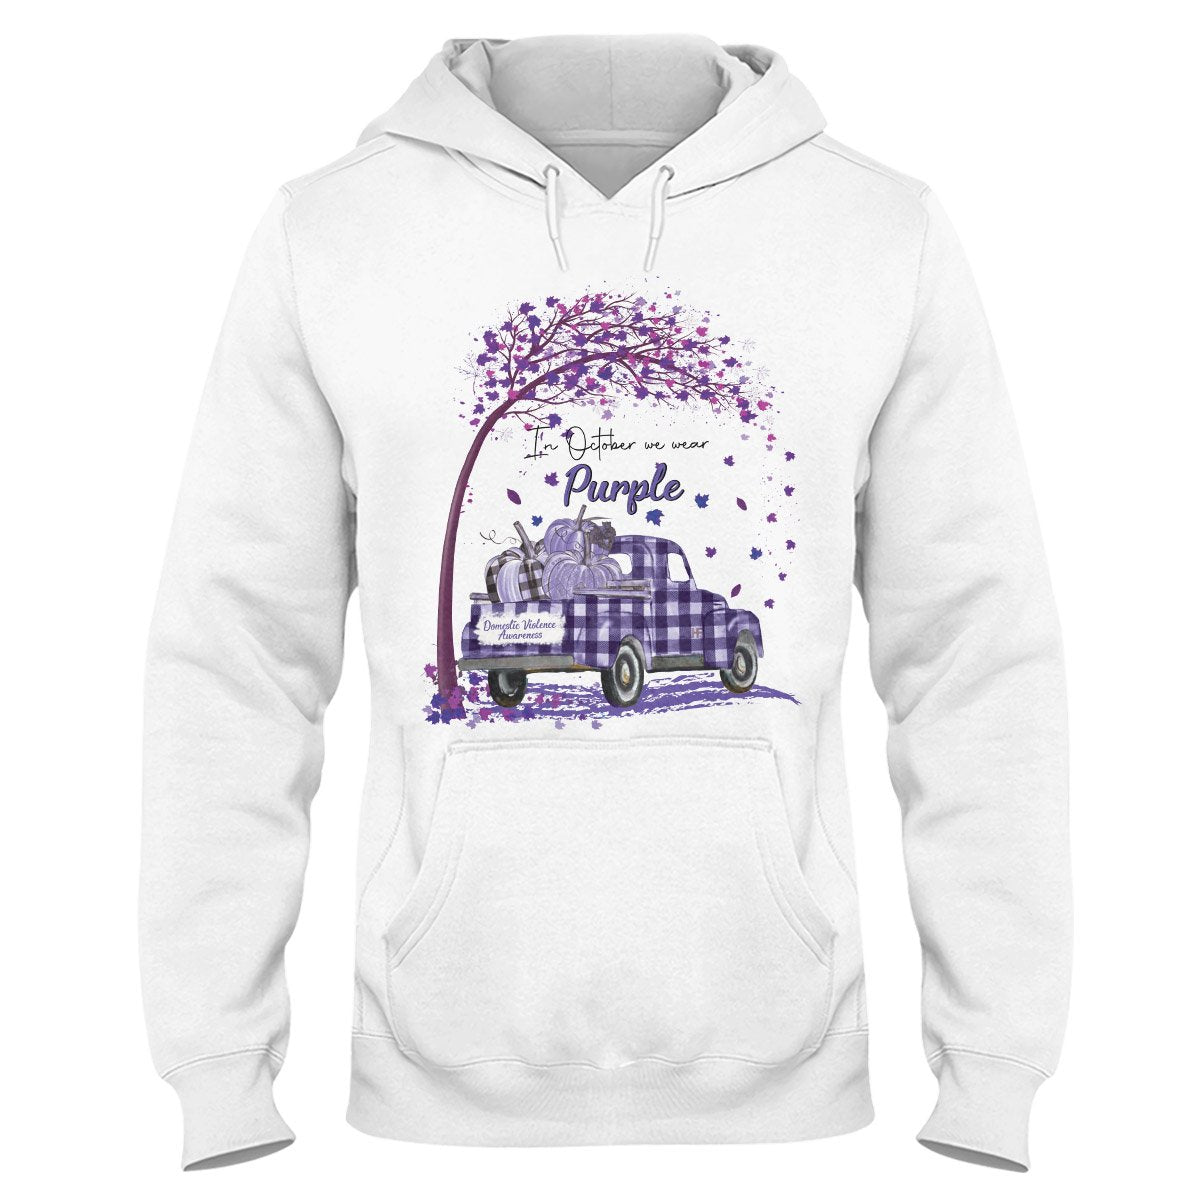 Domestic Violence Awareness Month October Hoodie